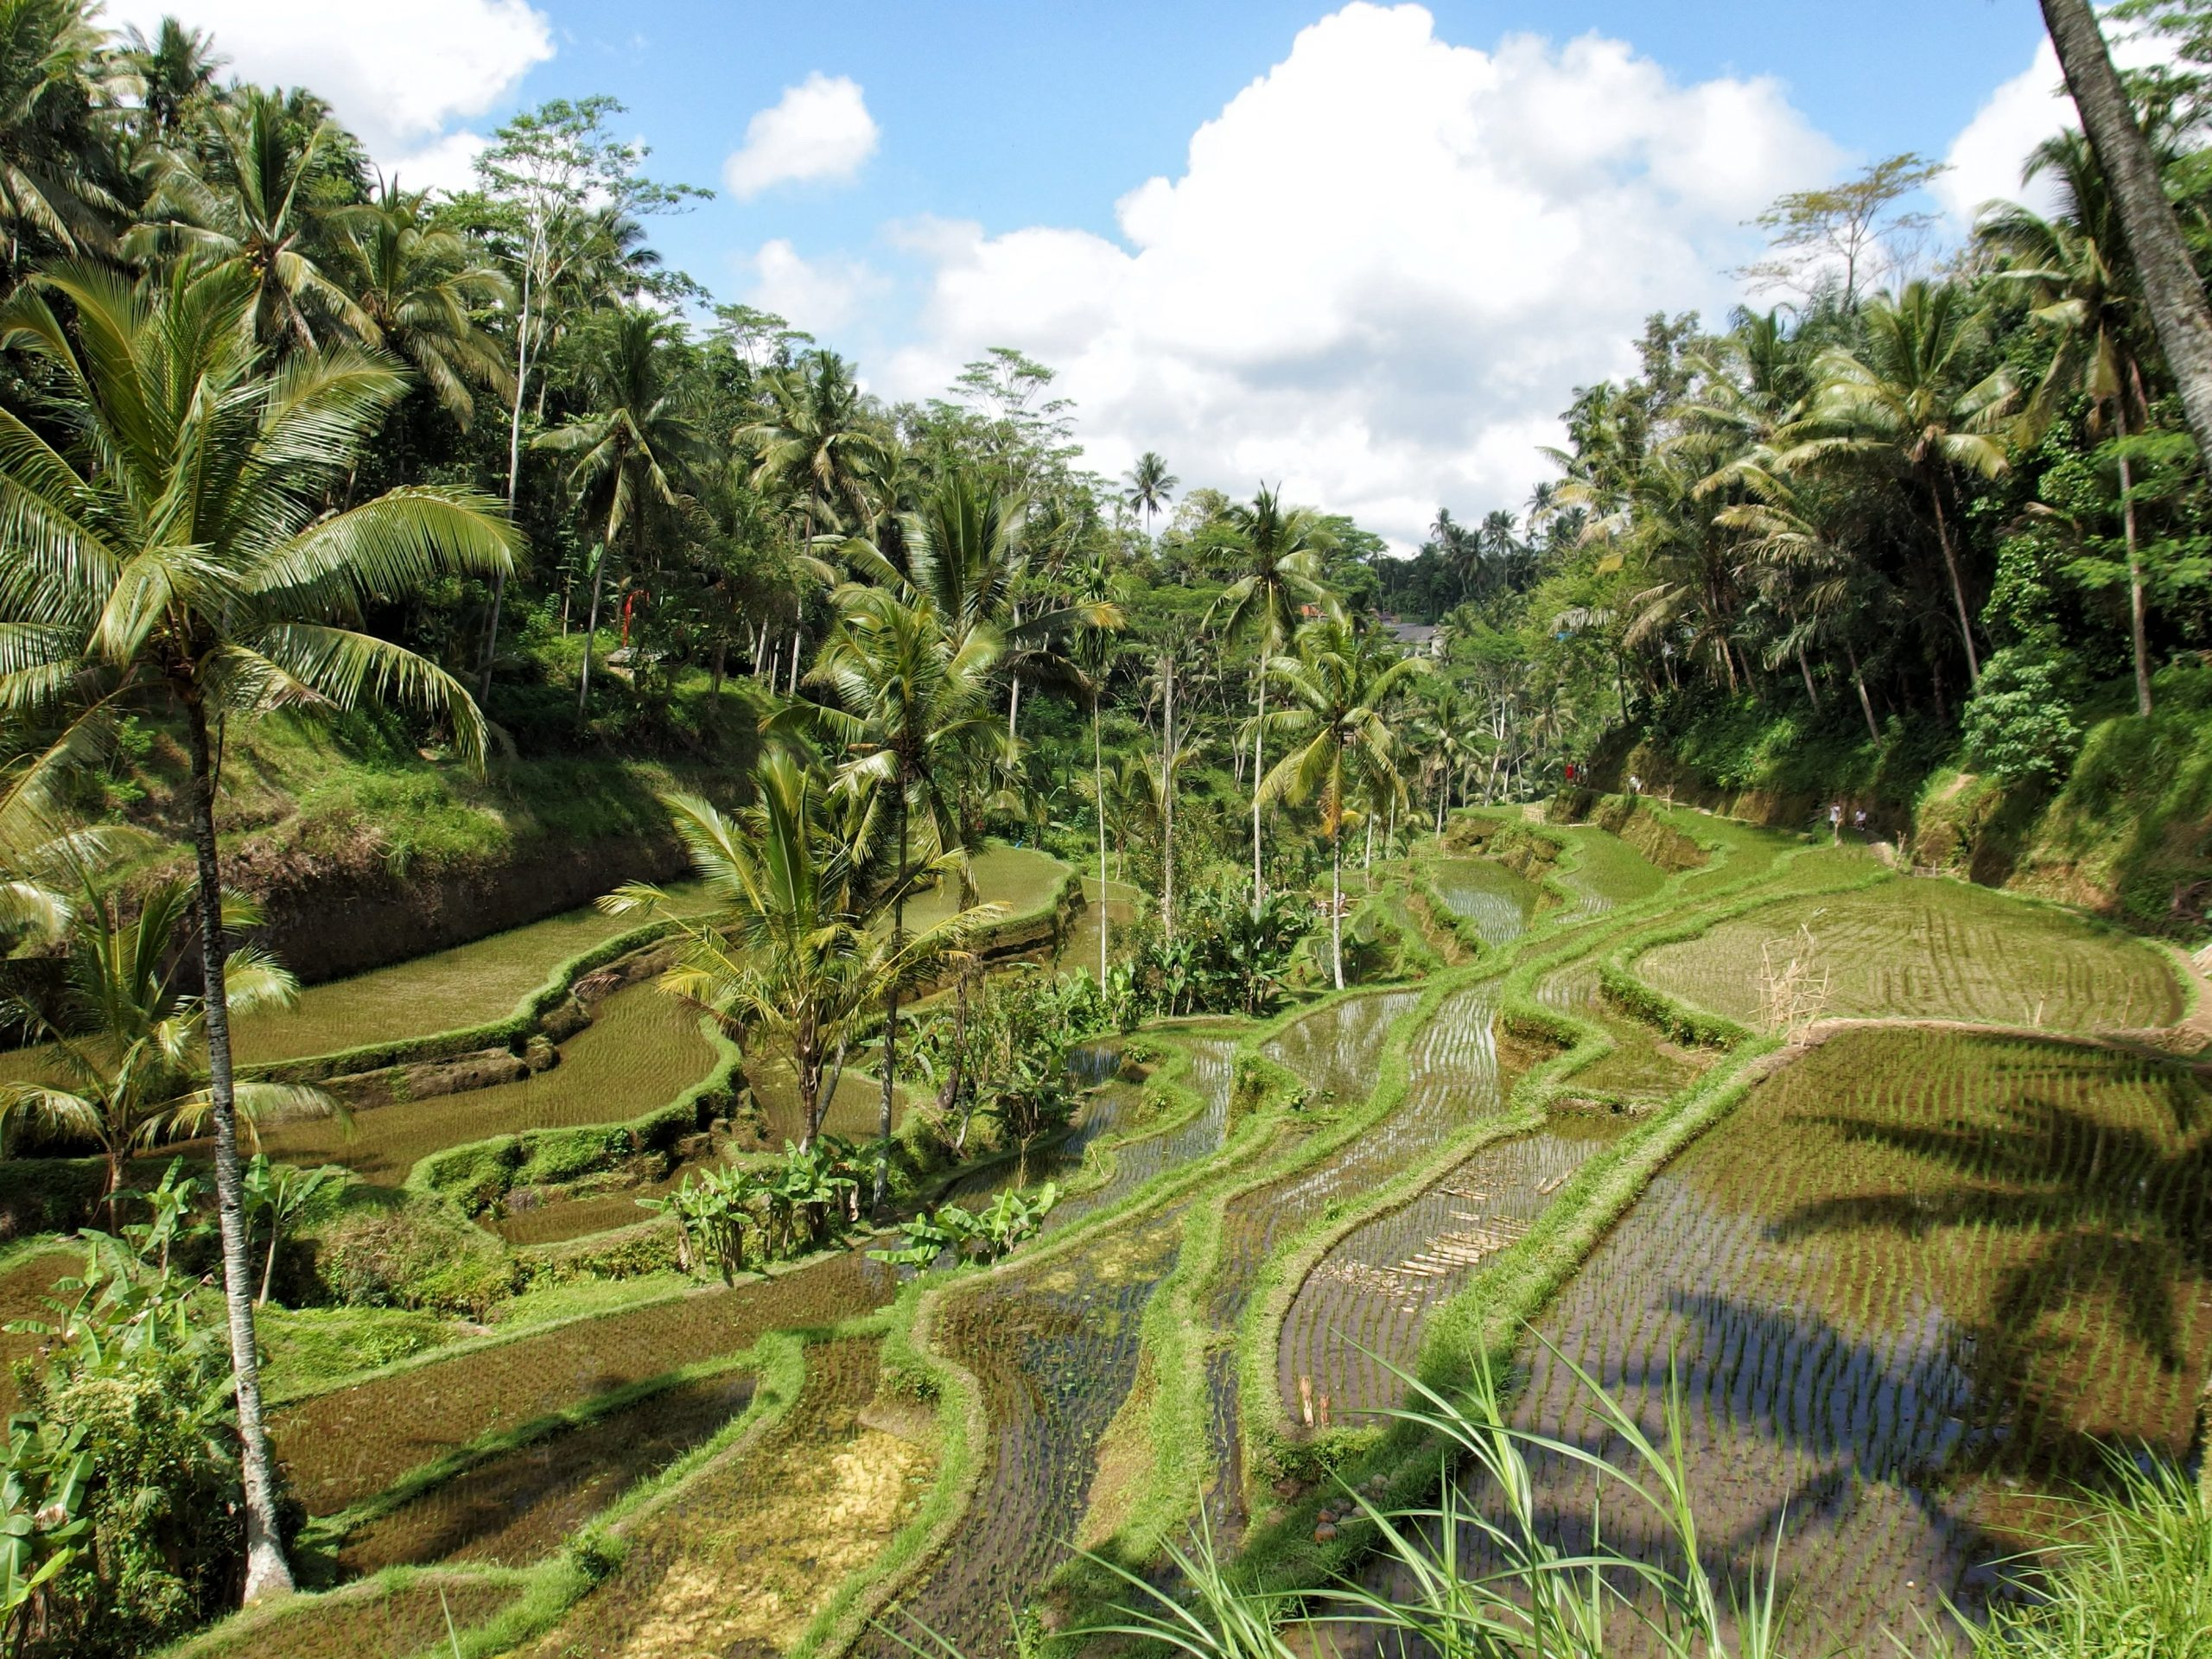 Best Ubud Activities Guide: What to Do When in Ubud?